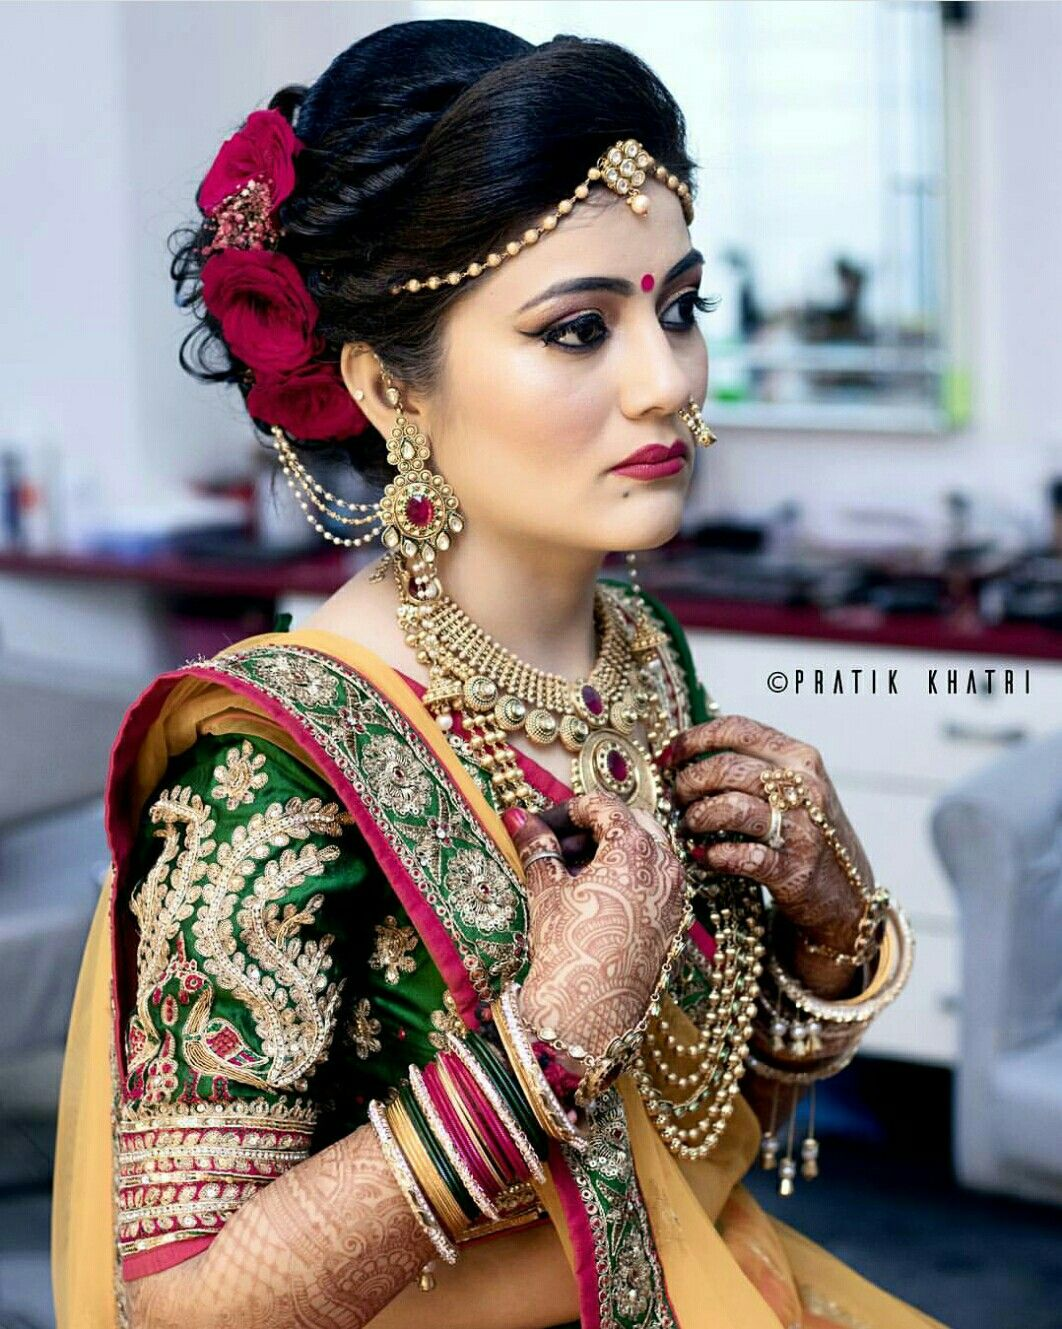 pin by creative jag on wedding in 2019 | indian wedding